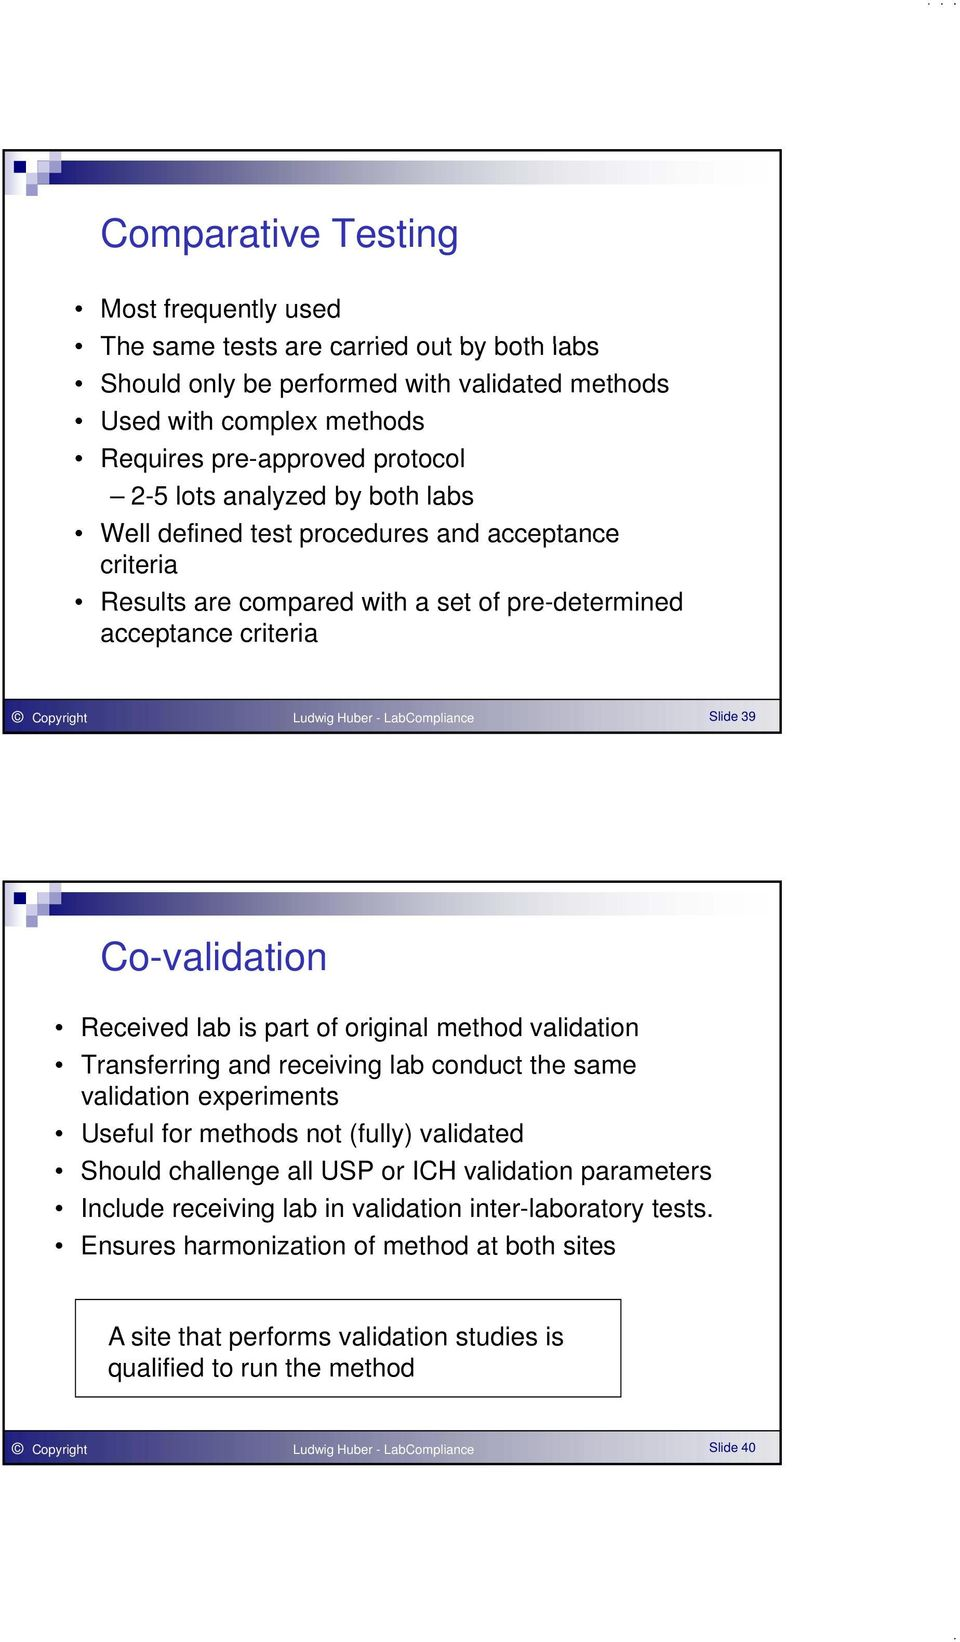 Co-validation Received lab is part of original method validation Transferring and receiving lab conduct the same validation experiments Useful for methods not (fully) validated Should challenge all